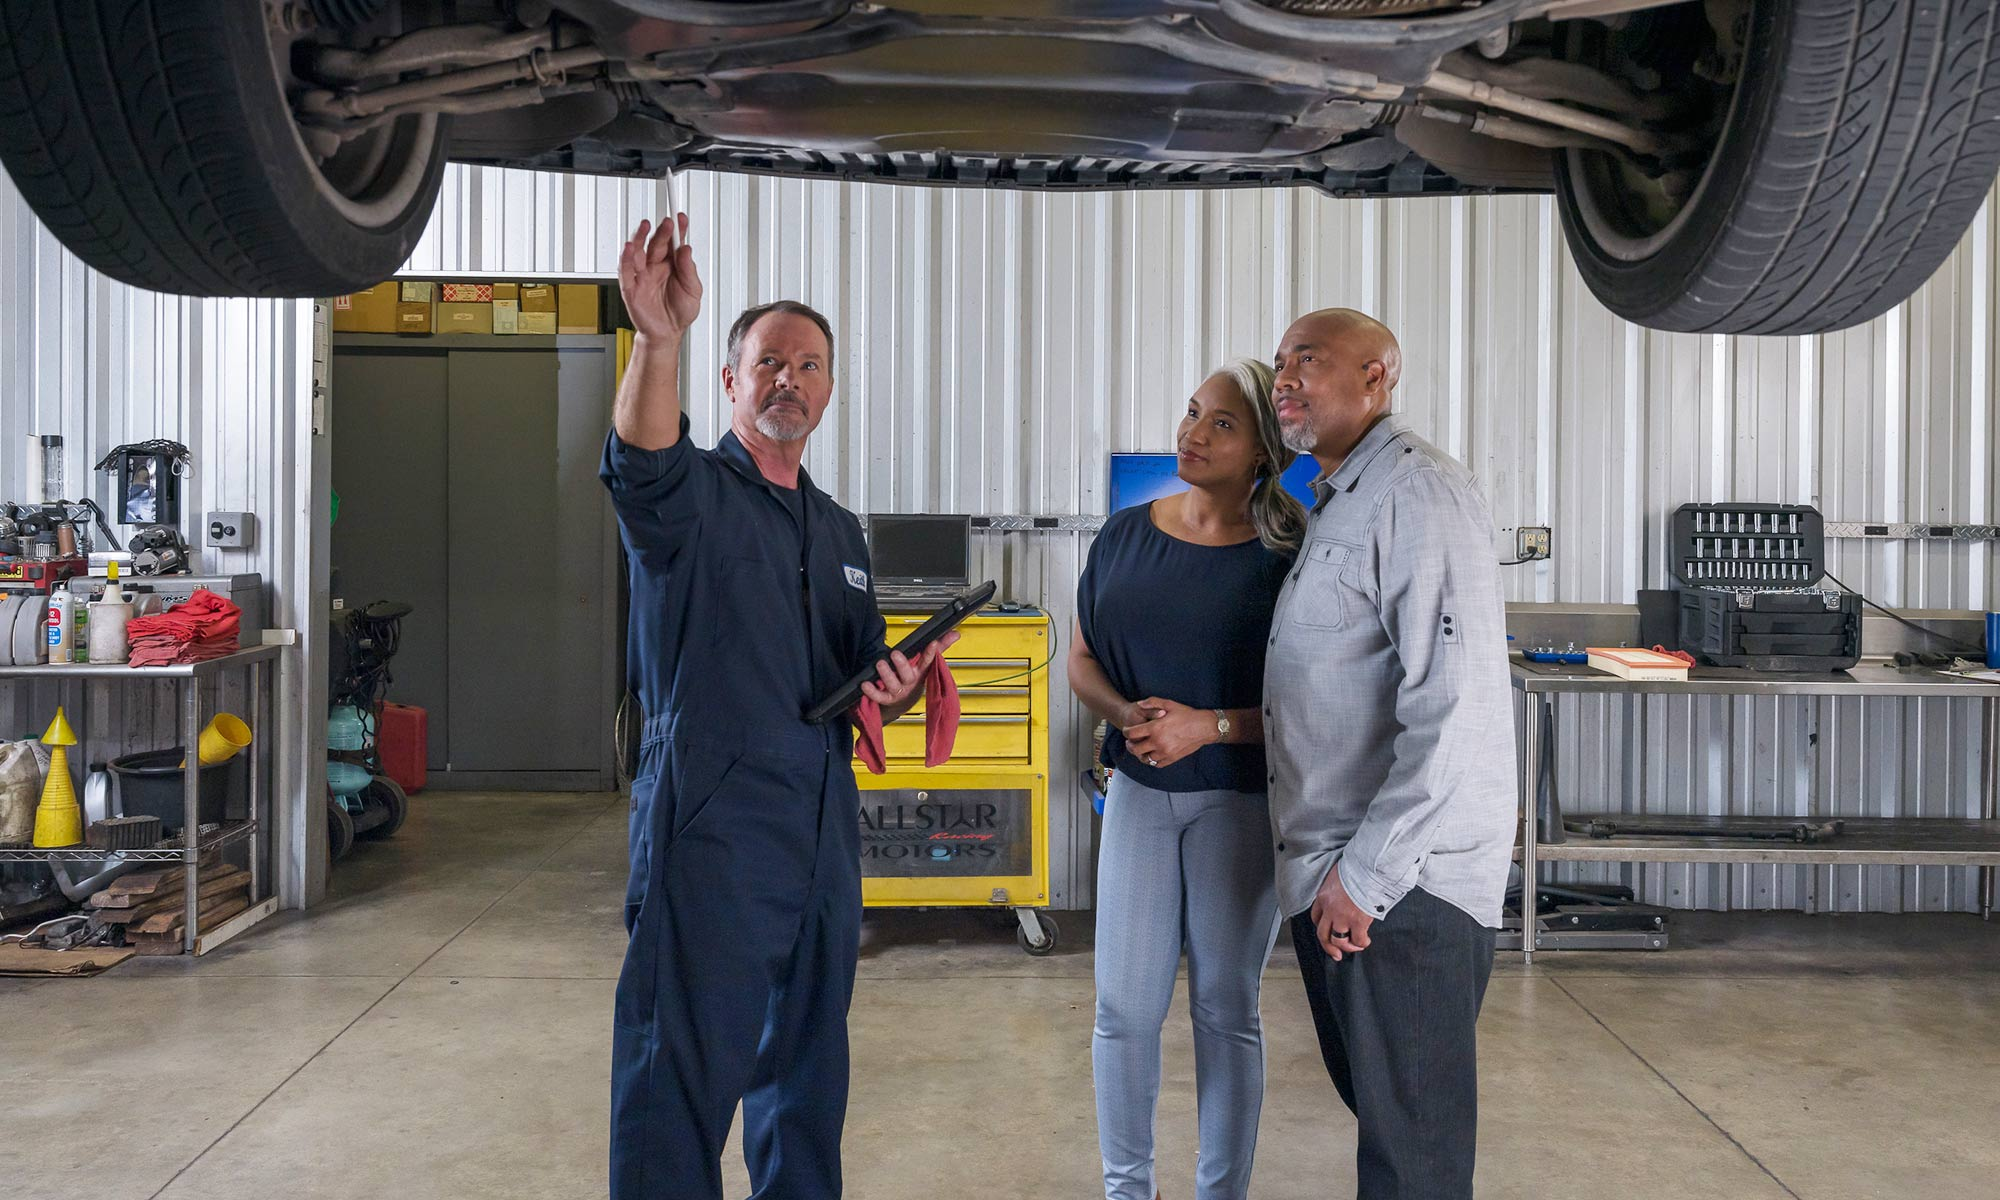 Car Service technician and customers